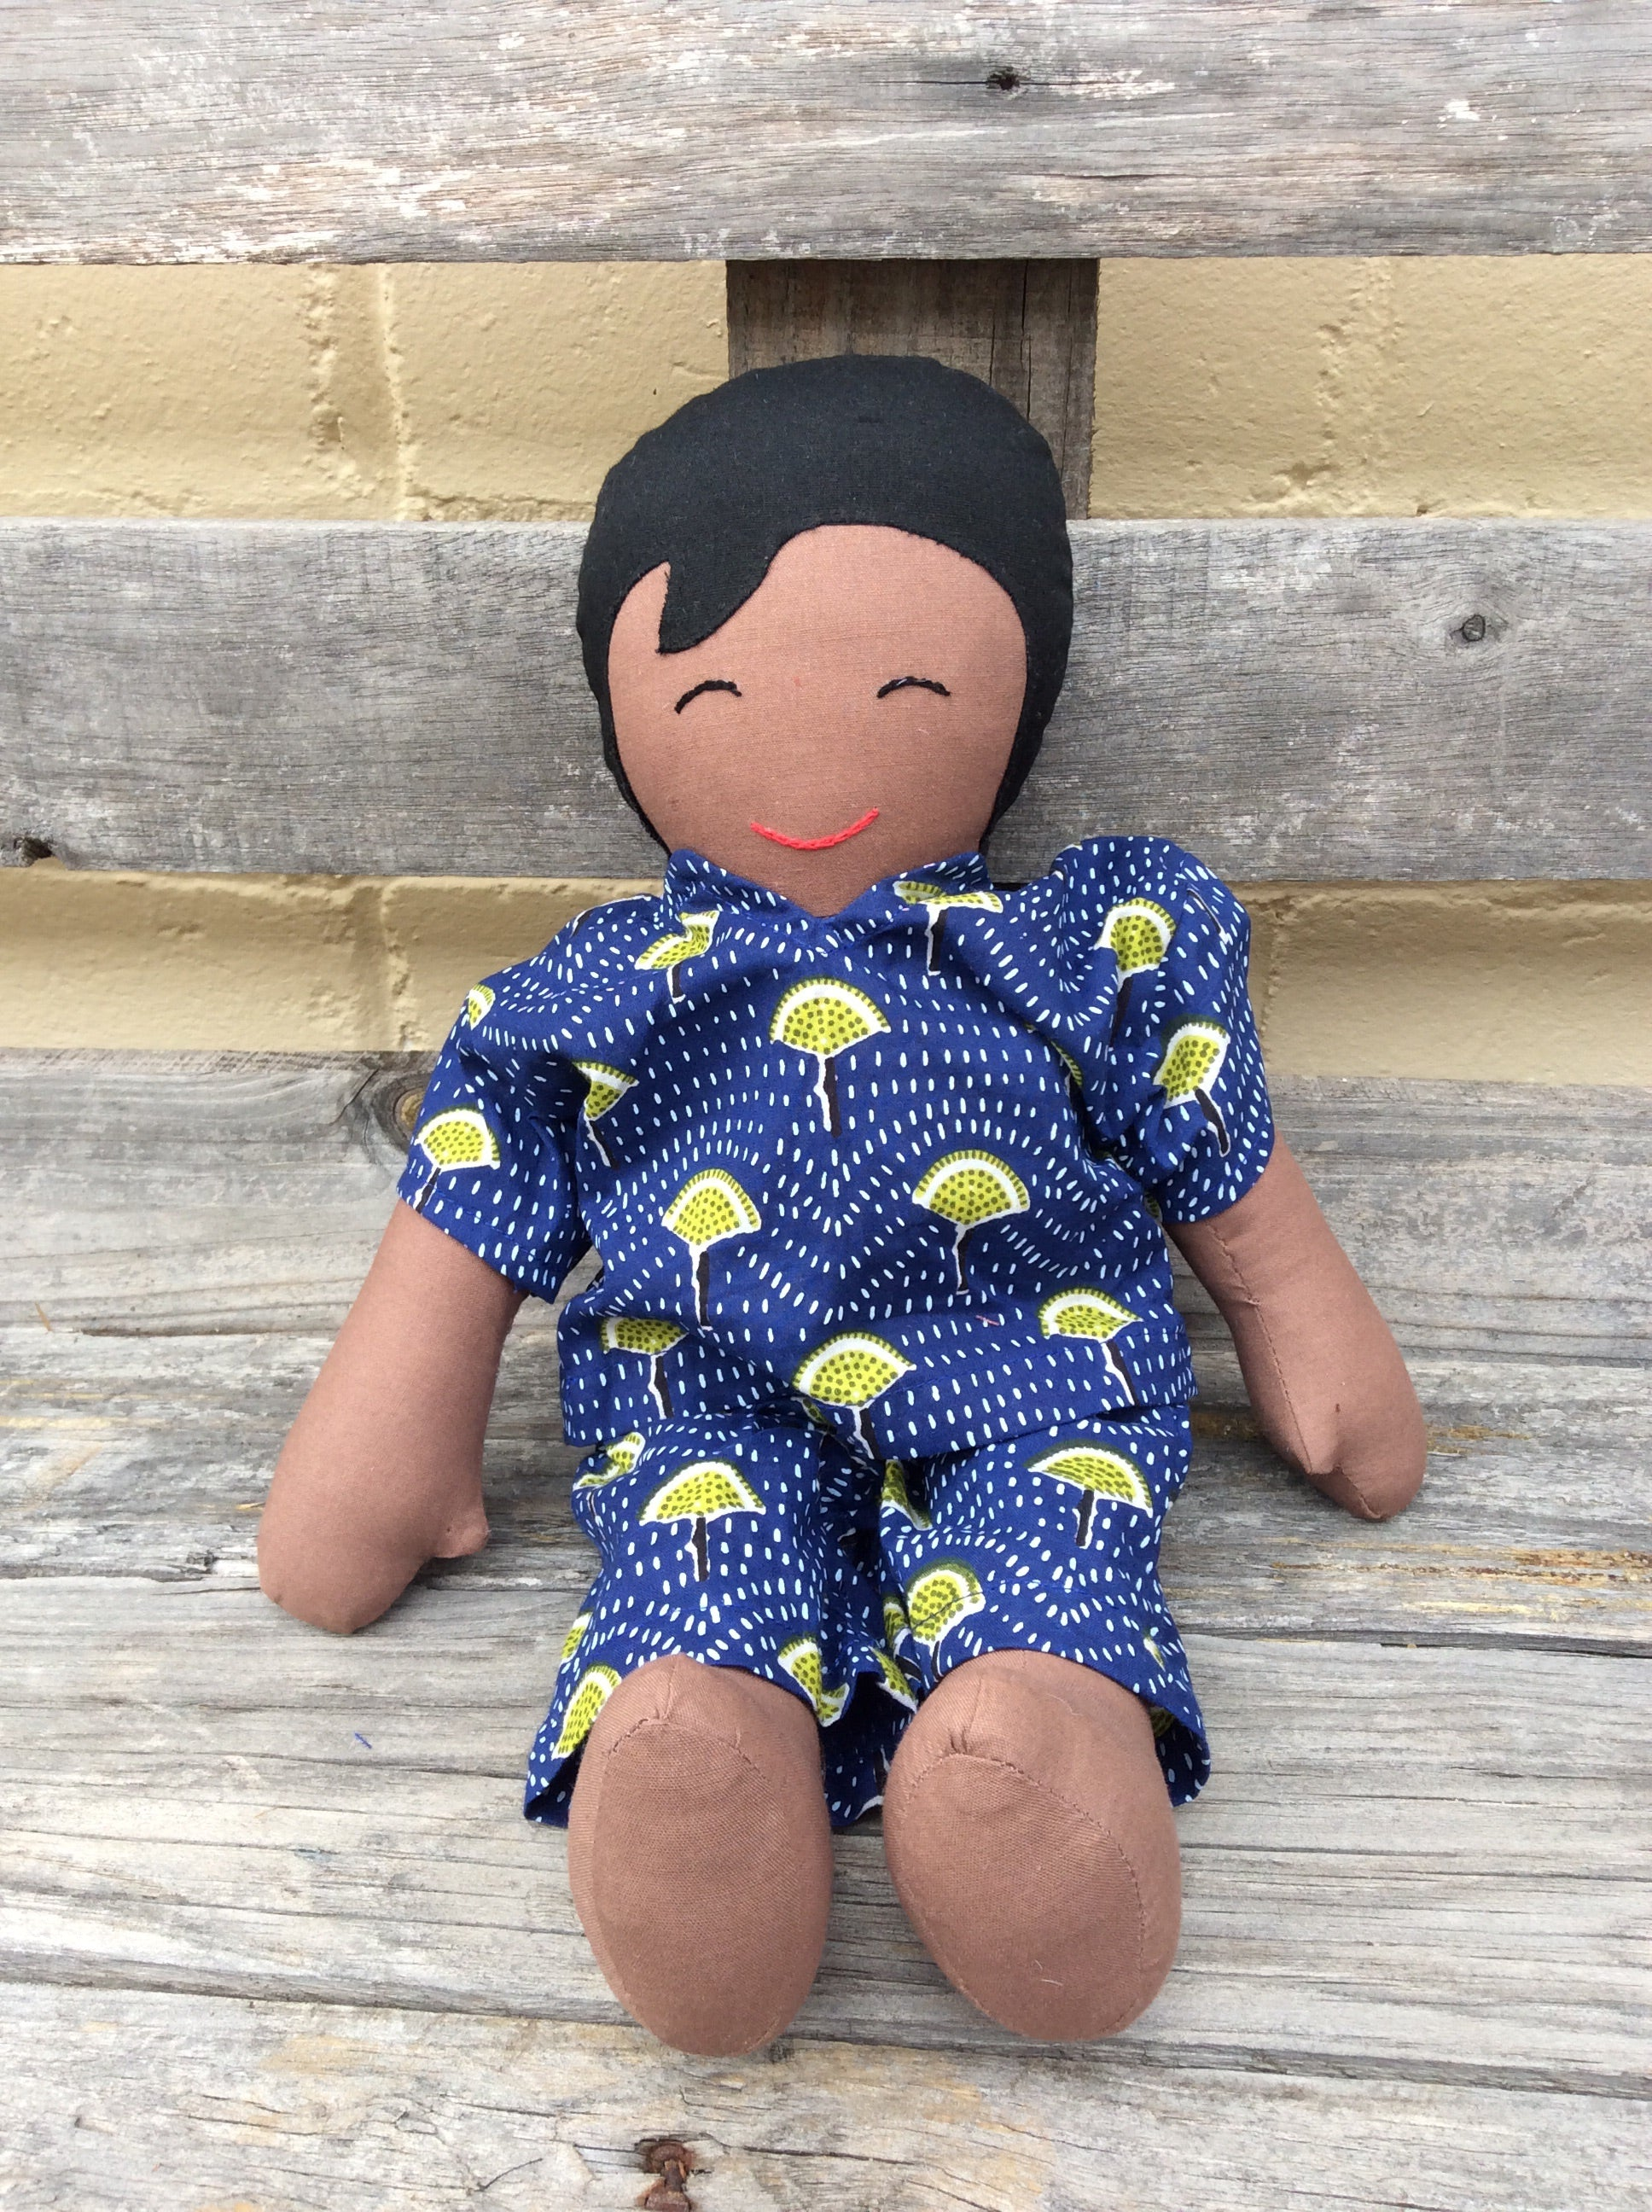 Boy Doll Toy